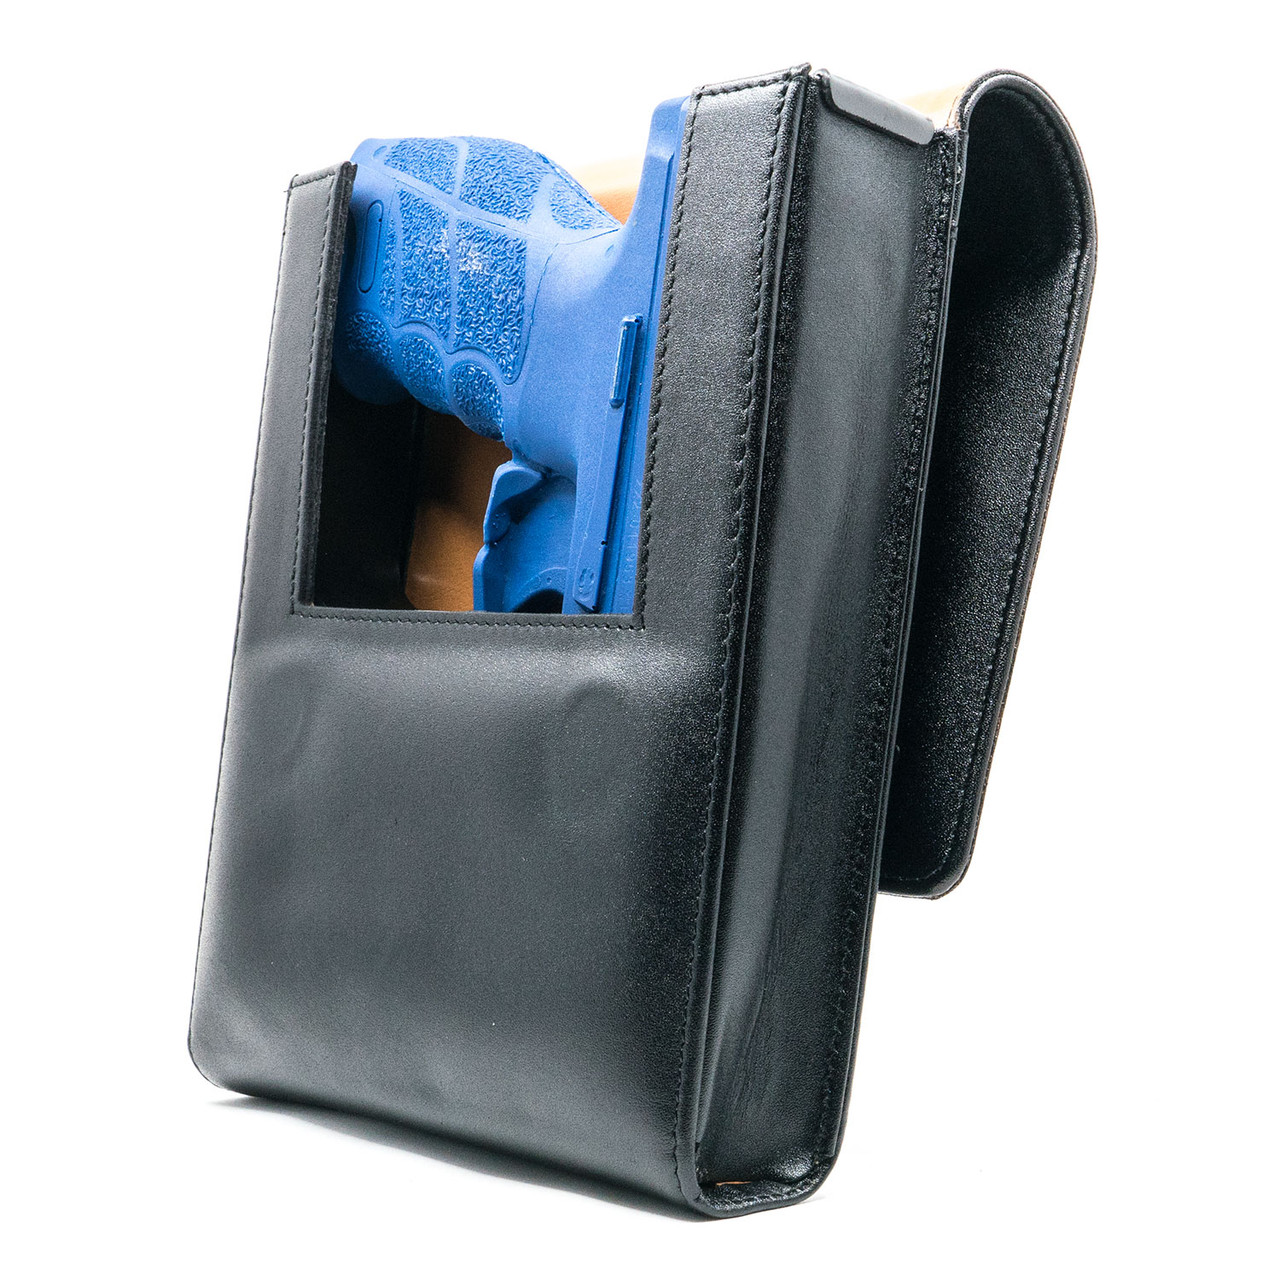 HK VP9 Concealed Carry Holster (Belt Loop)